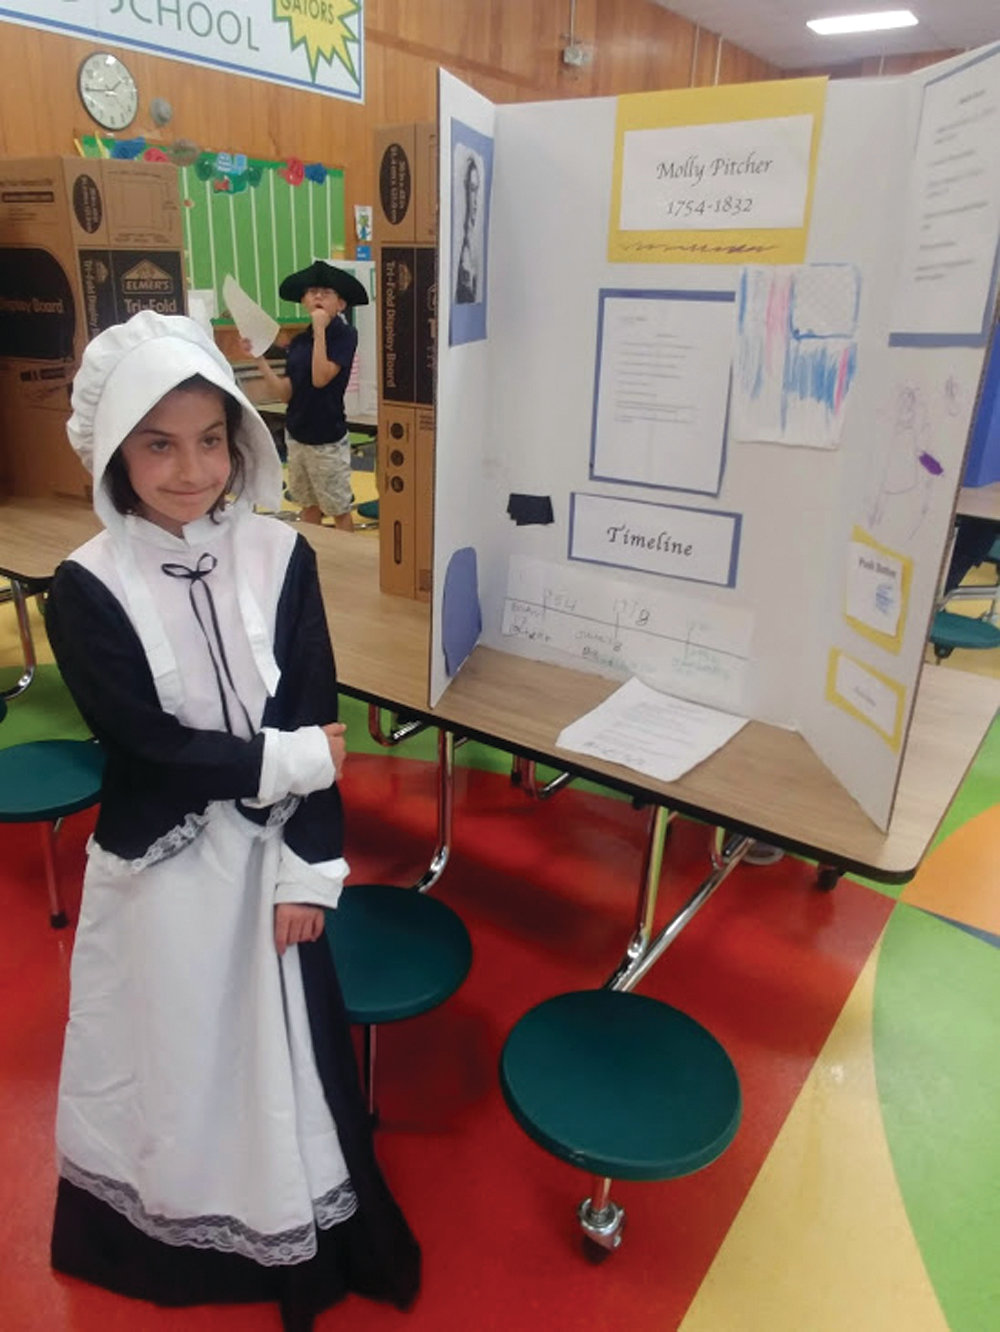 MOLLY PITCHER: Alexa Senna did her research about Molly Pitcher. She learned that Pitcher had not attended school.